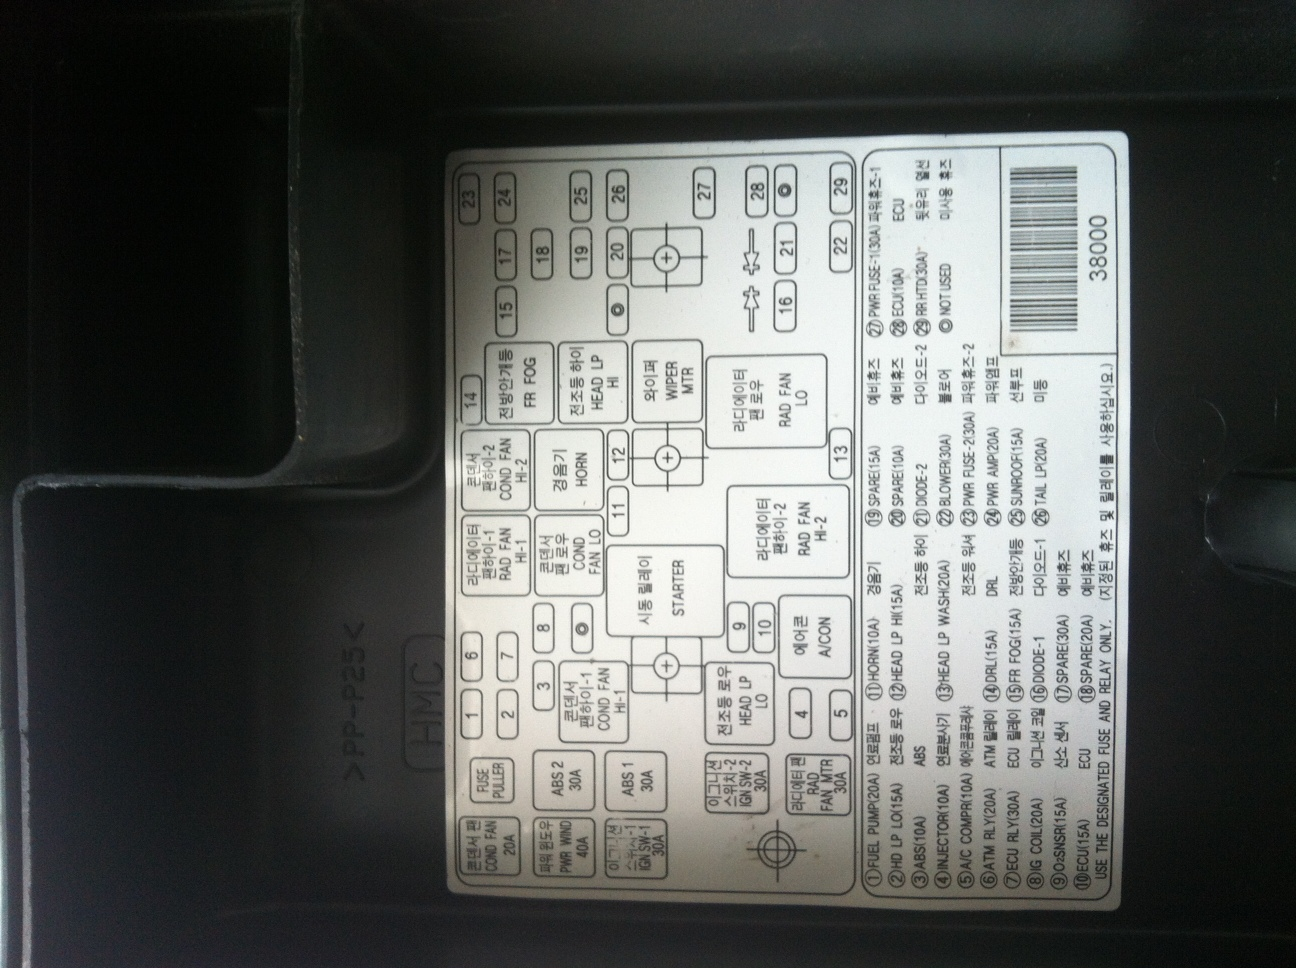 original c?garette lighter & power outlet don't work 2001 hyundai sonata fuse box diagram at virtualis.co